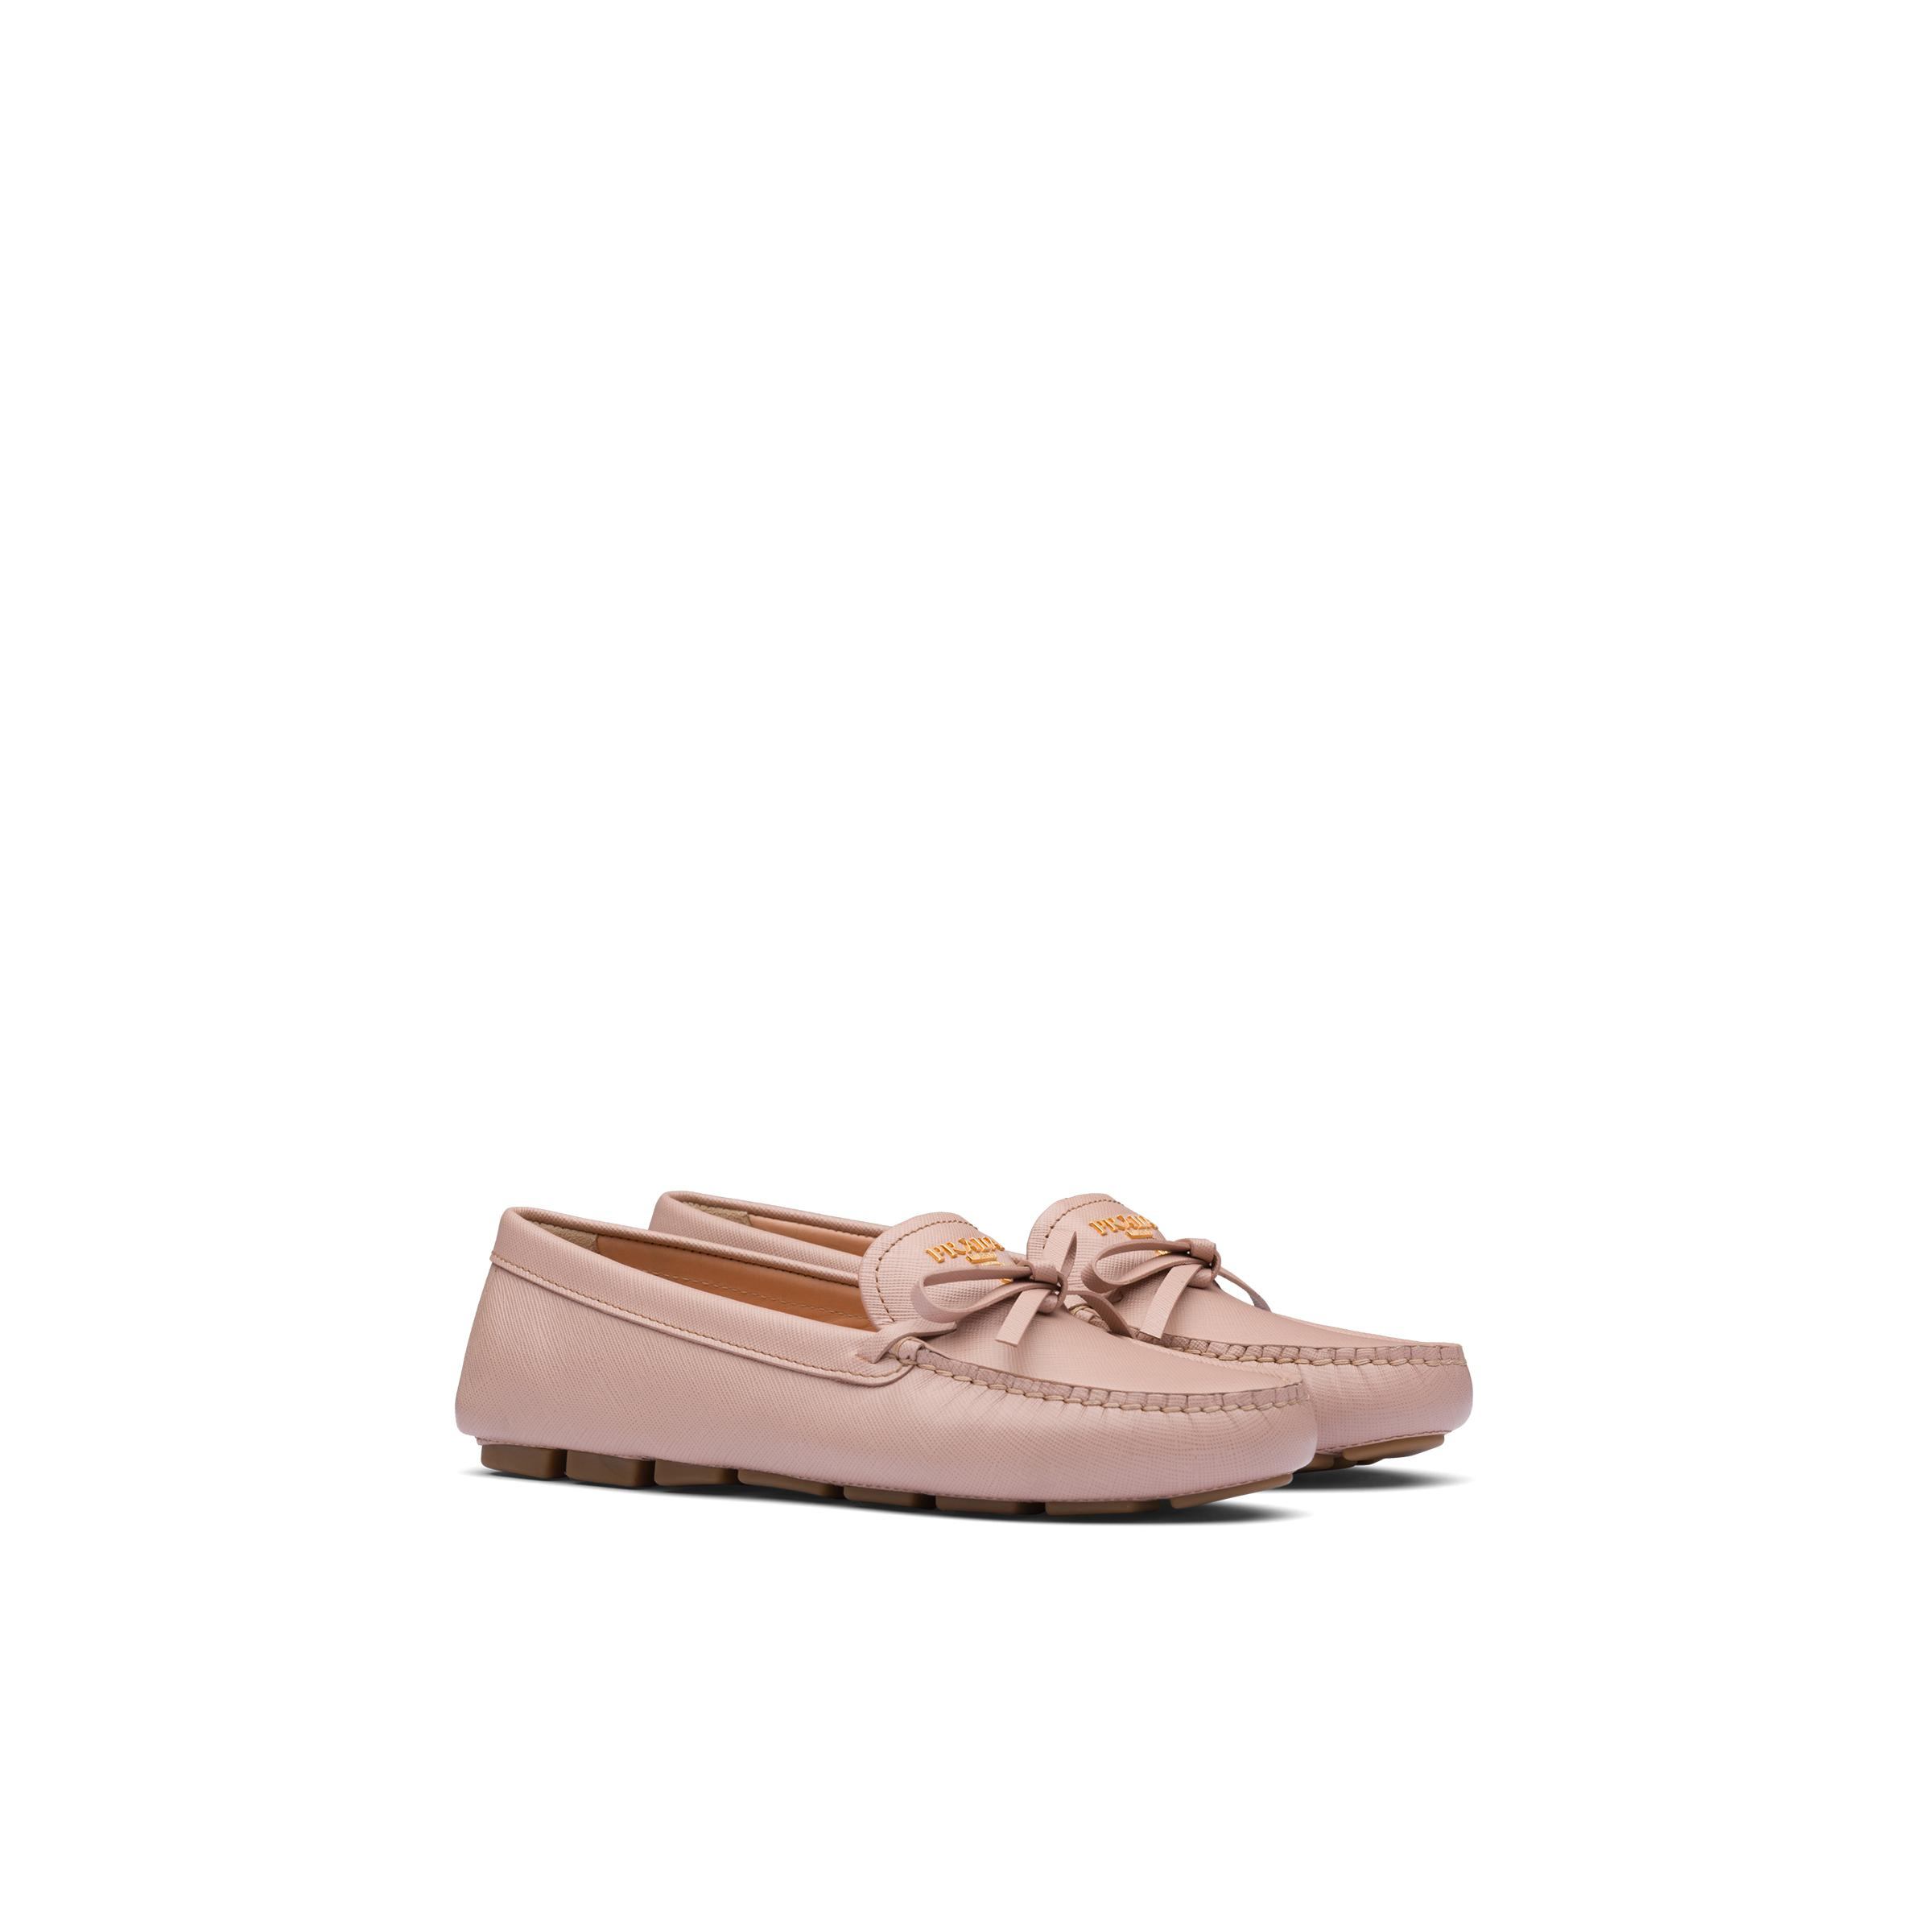 Saffiano Leather Loafers Women Powder Pink